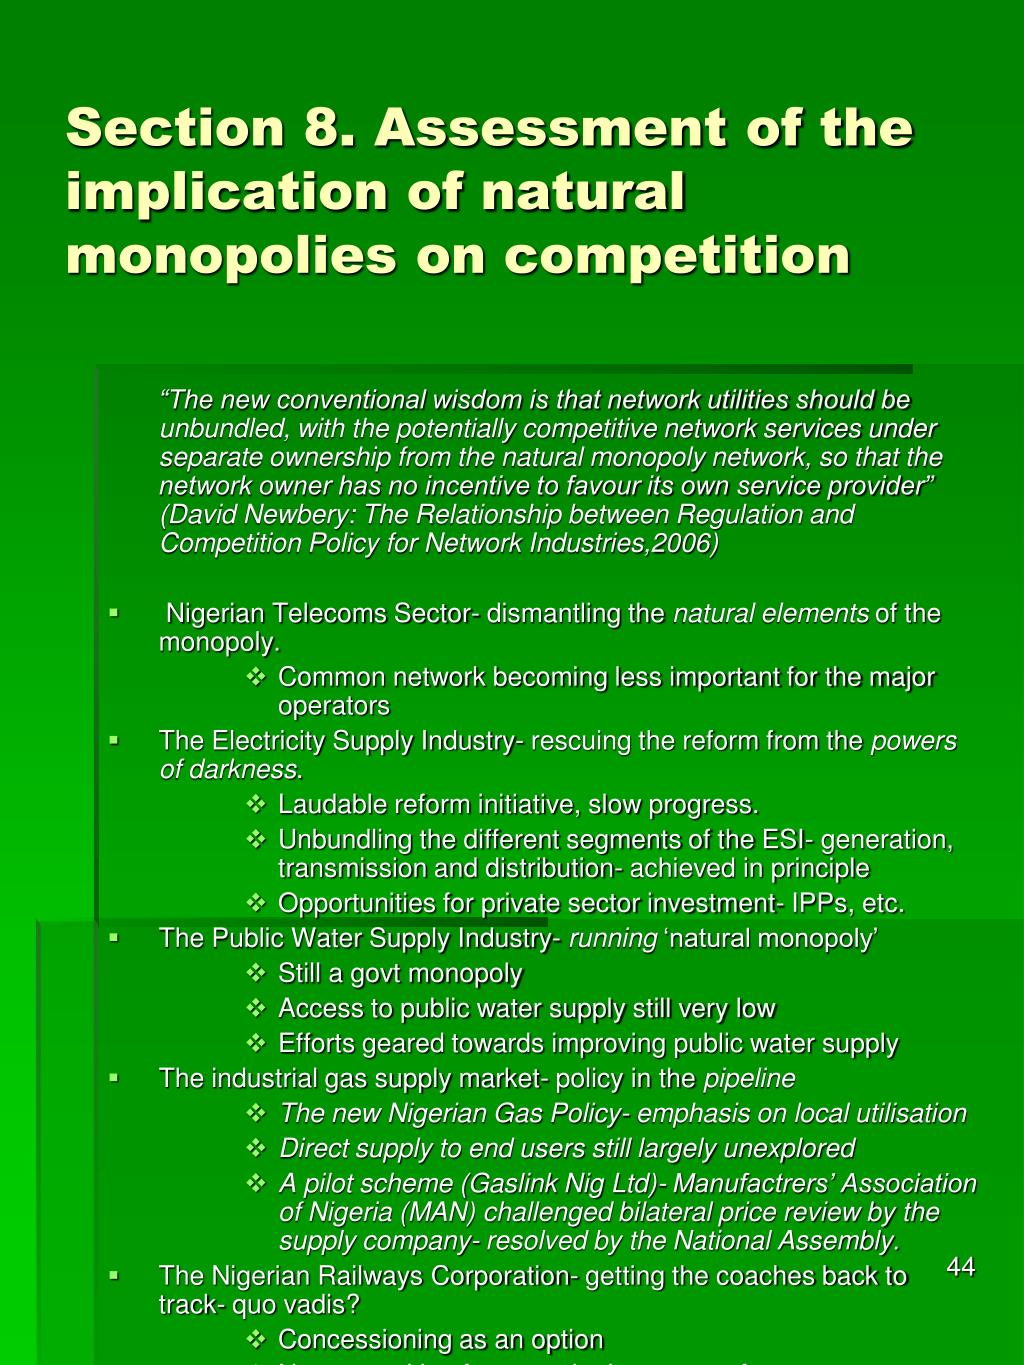 Section 8. Assessment of the implication of natural monopolies on competition